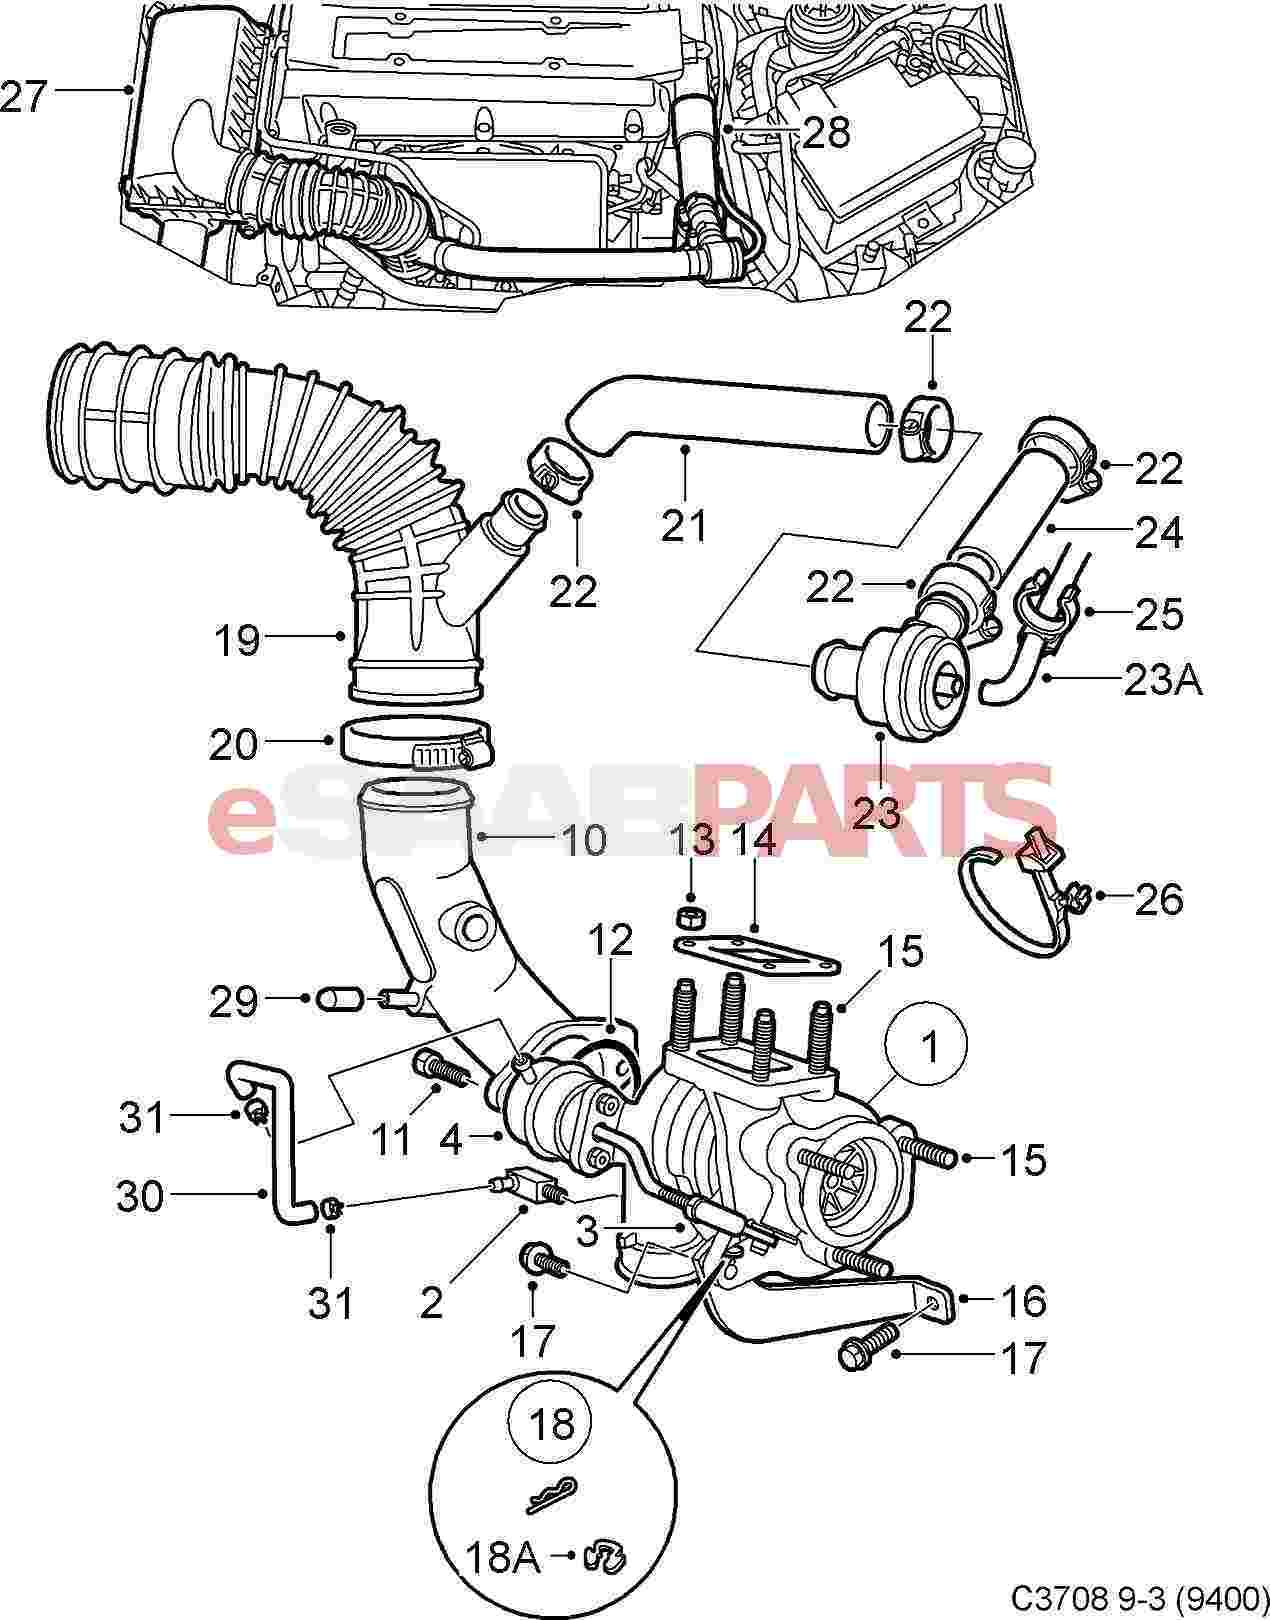 saab 9 3 engine diagram  saab  auto parts catalog and diagram